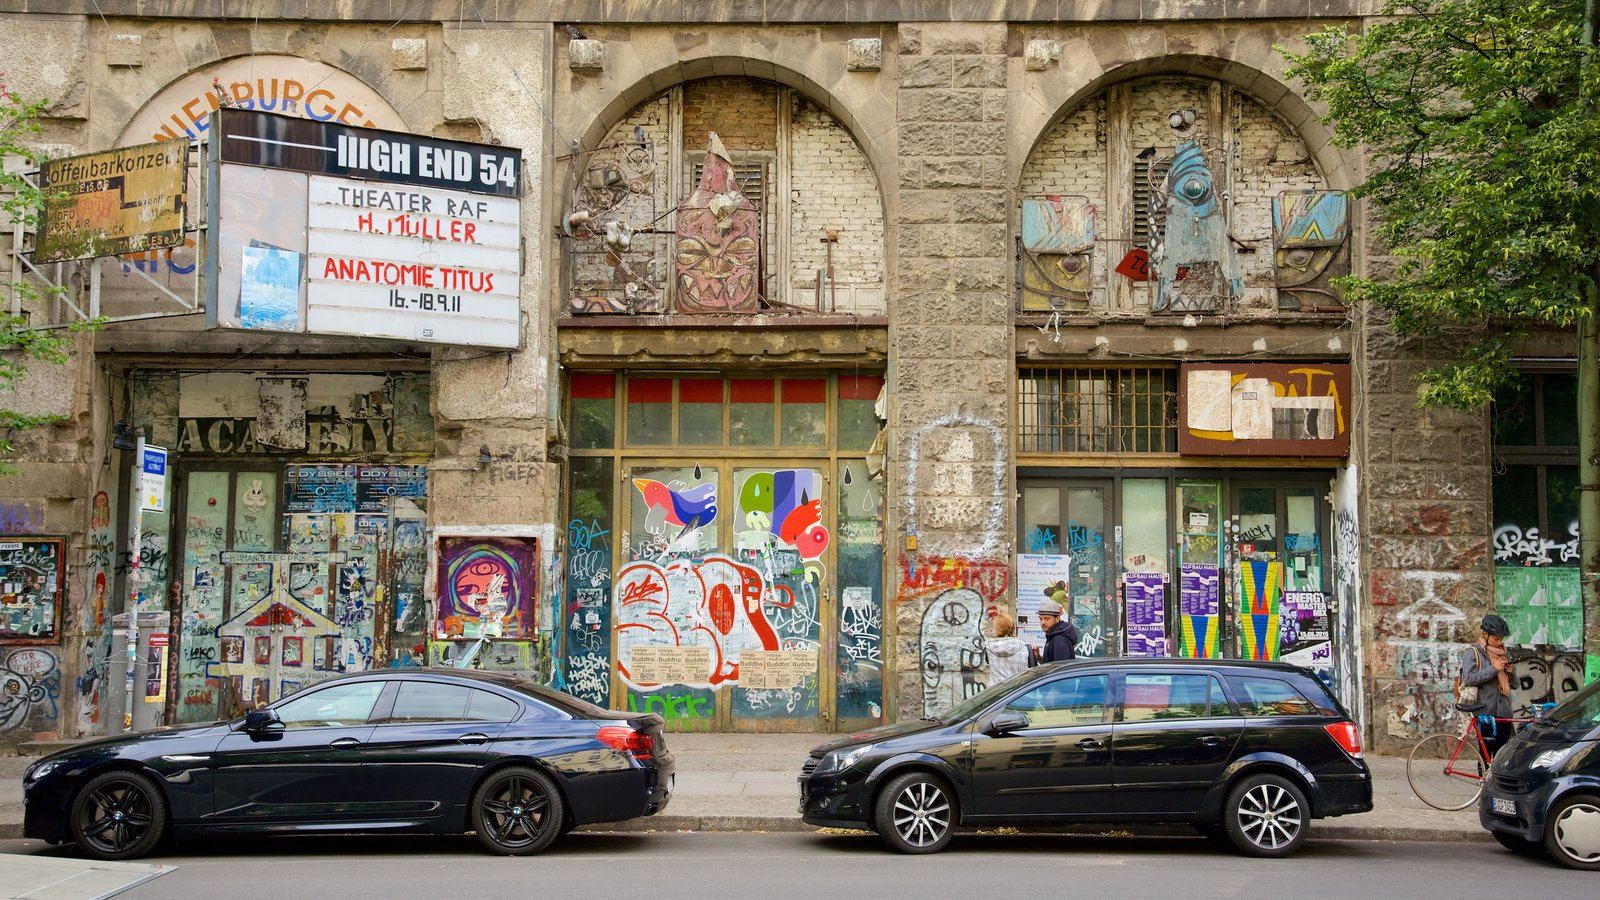 Art Pictures: View Images of Torstrasse